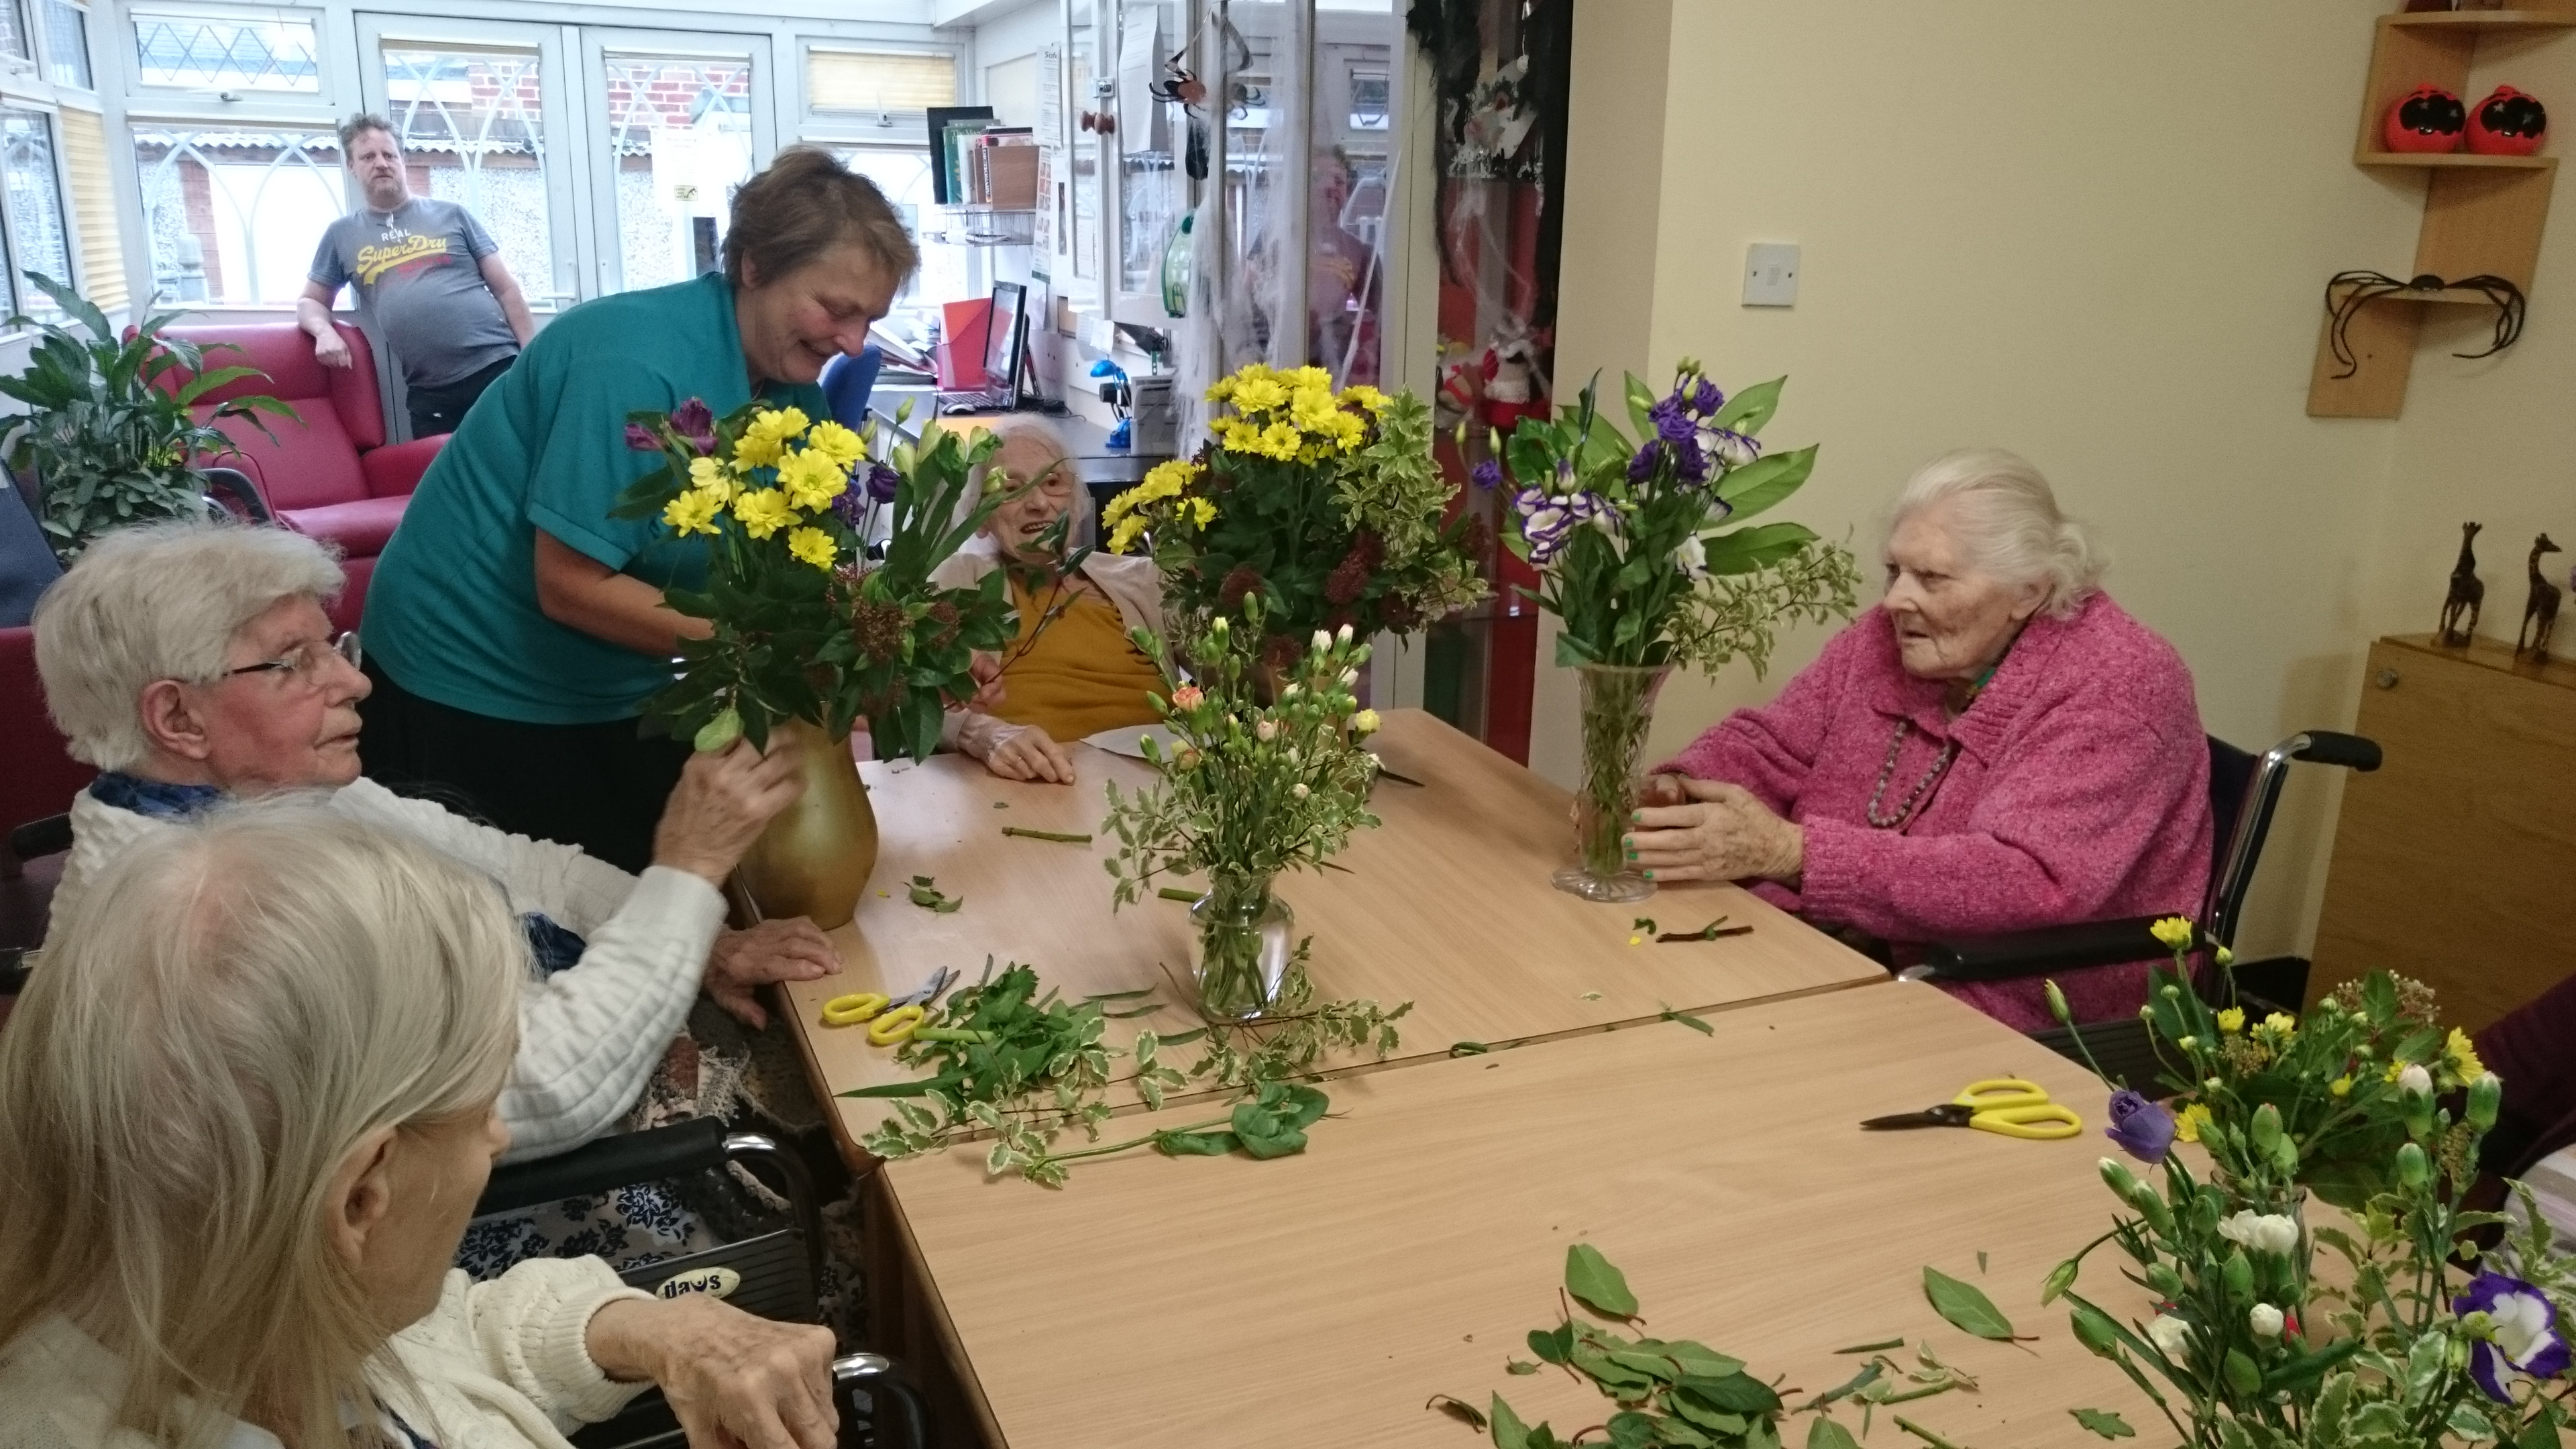 Gail's Flower Arrangement Activity